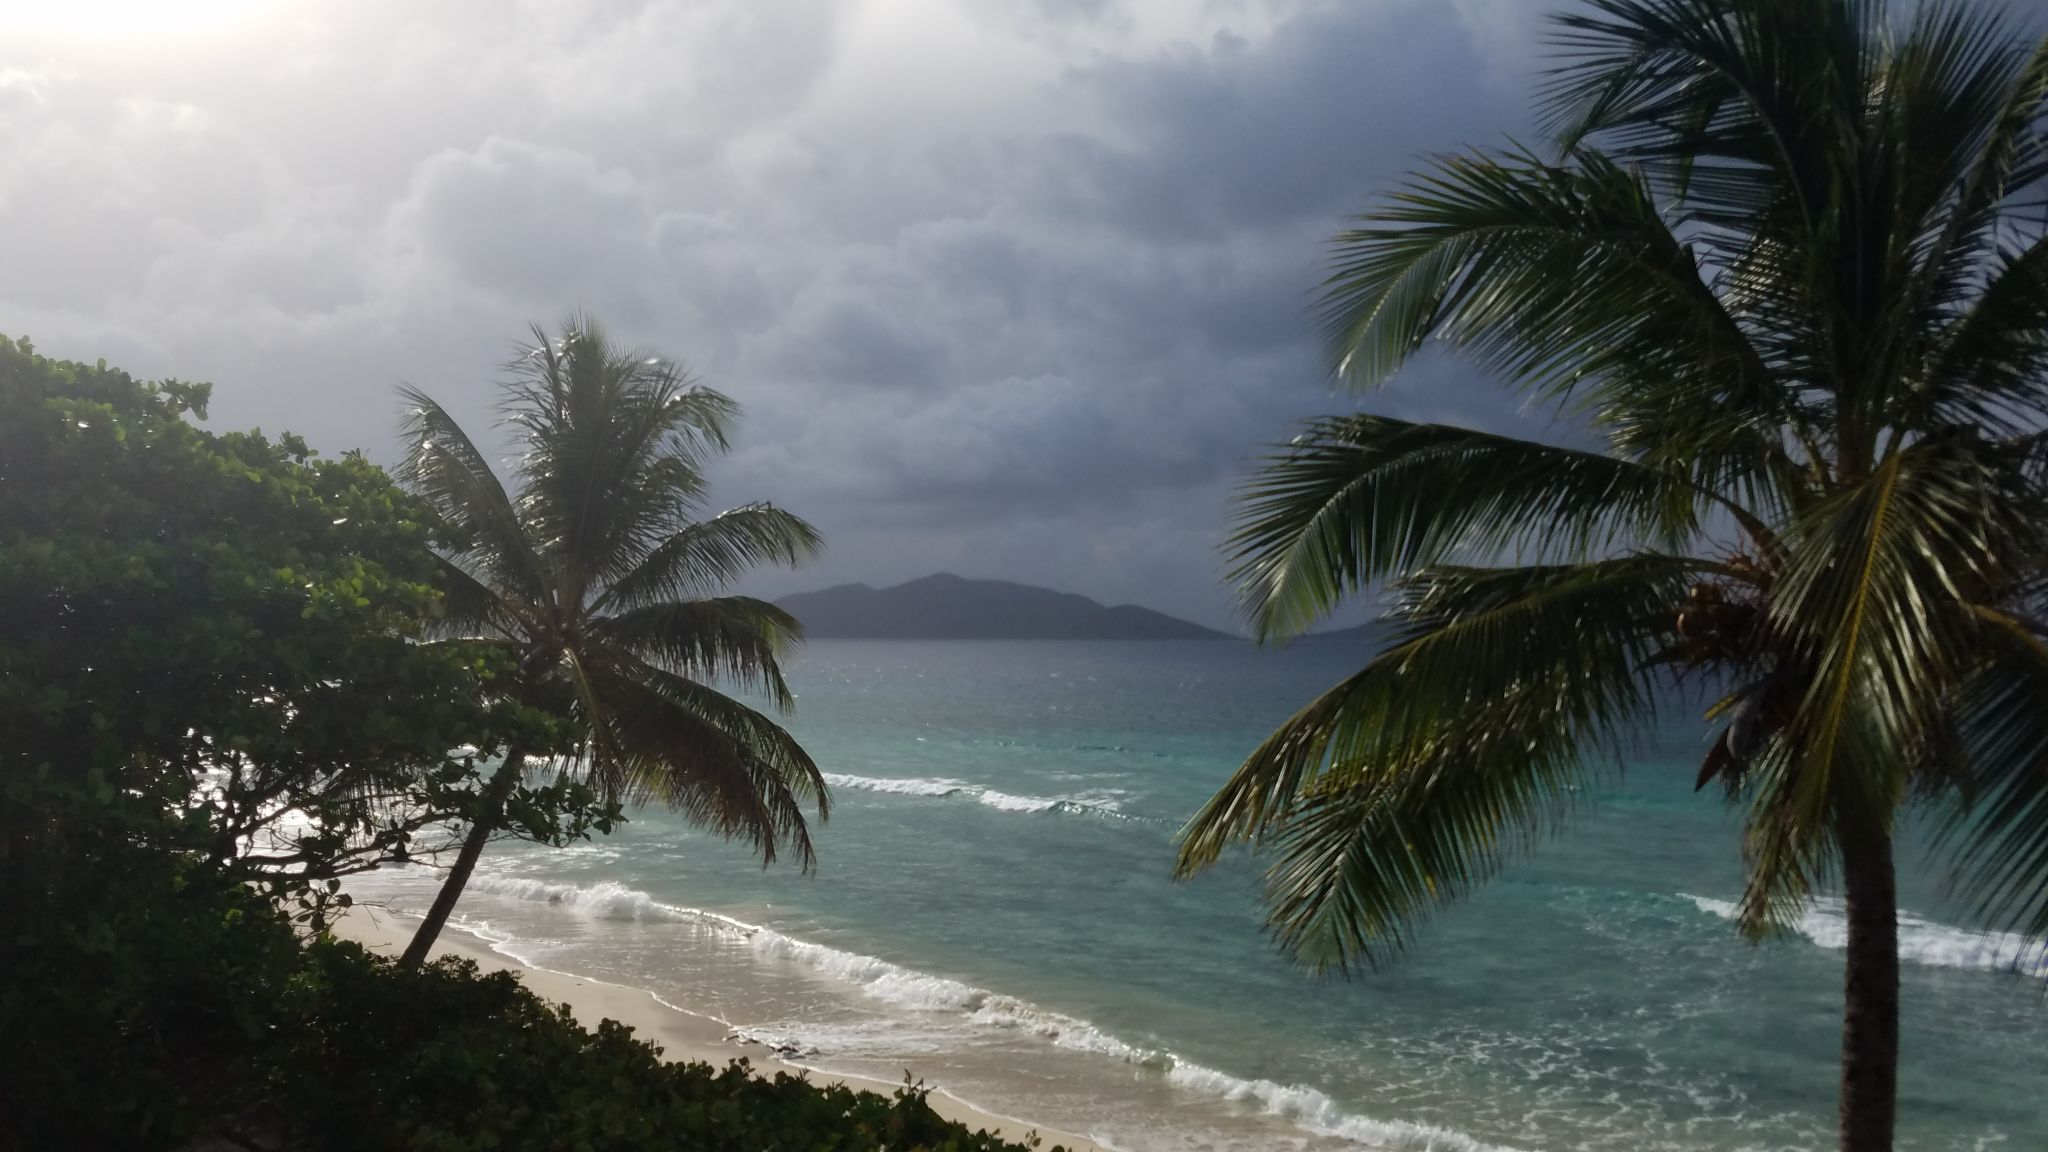 the view from Long Bay Beach Resort 2017, British Virgin Islands